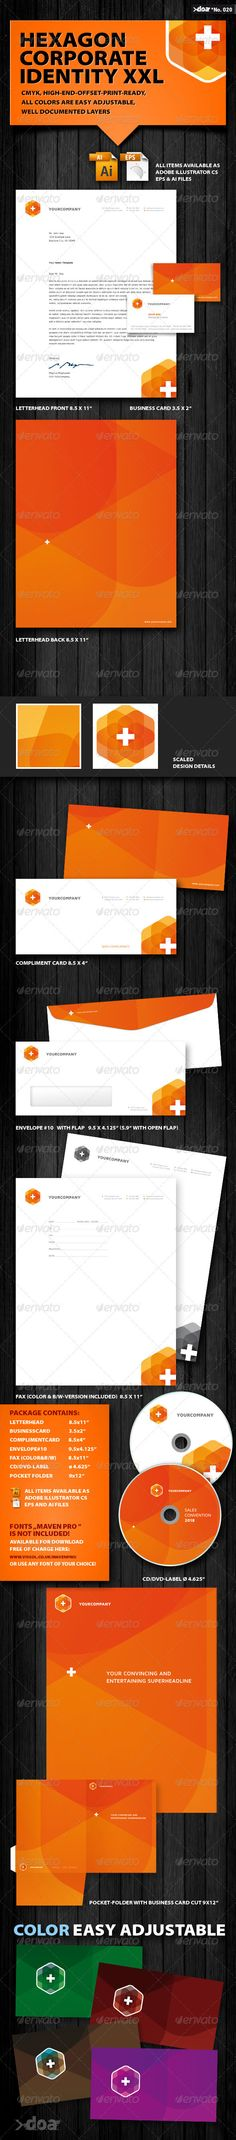 Hexagon Corporate Identity XXL - #Stationery #Print #Templates Download here: https://graphicriver.net/item/hexagon-corporate-identity-xxl/411159?ref=alena994